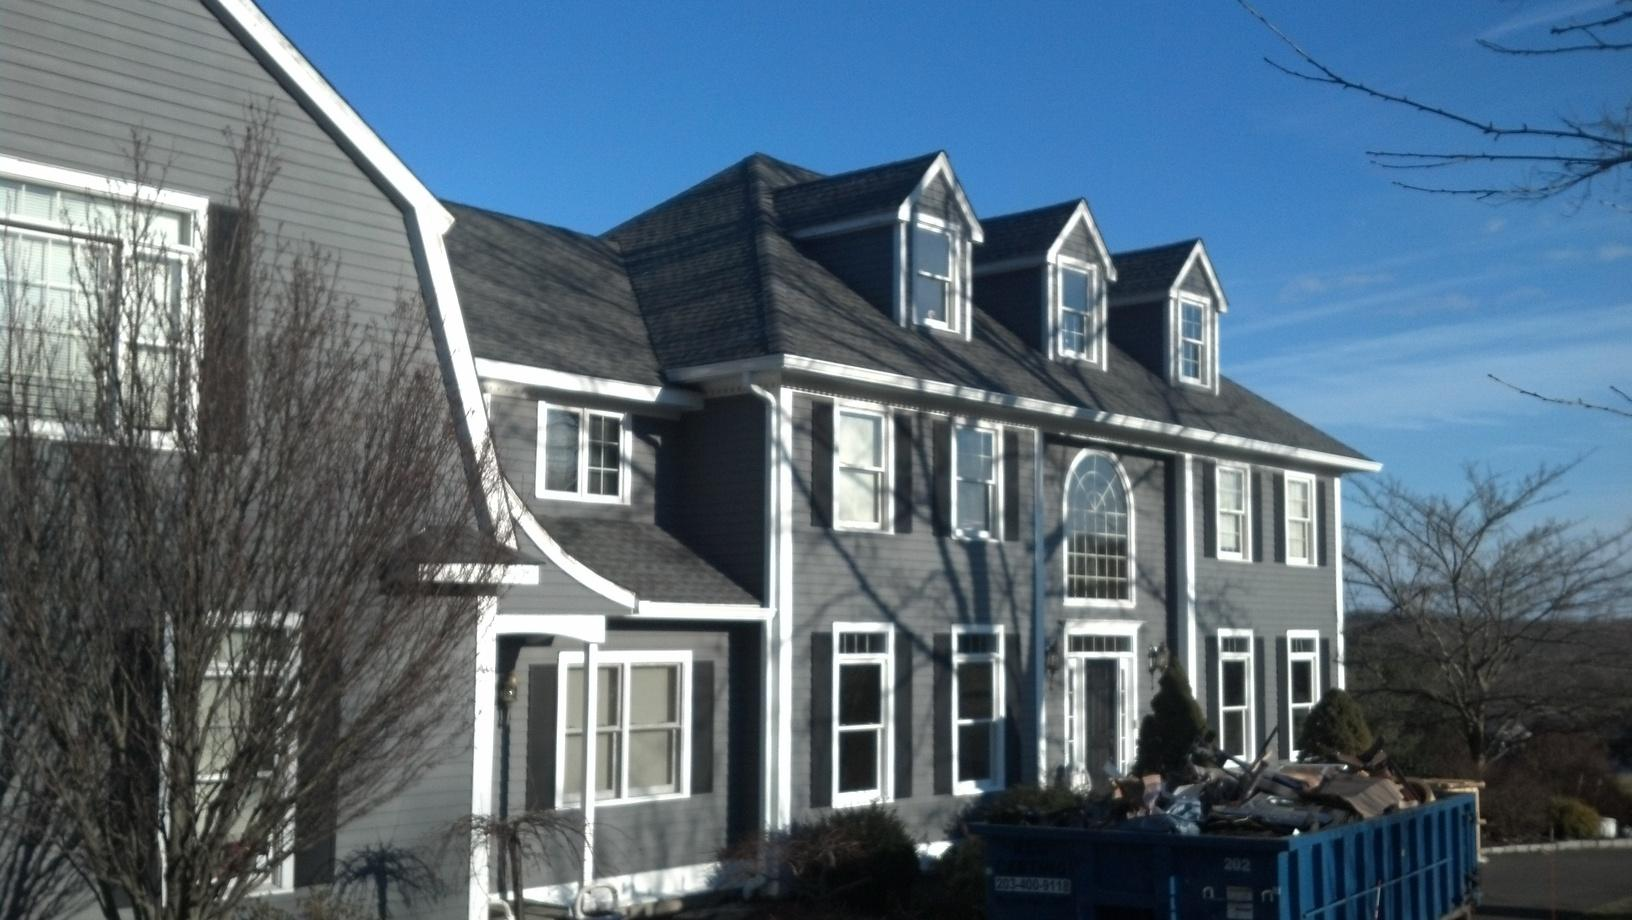 Complete Roof Replacement in Trumbull, CT